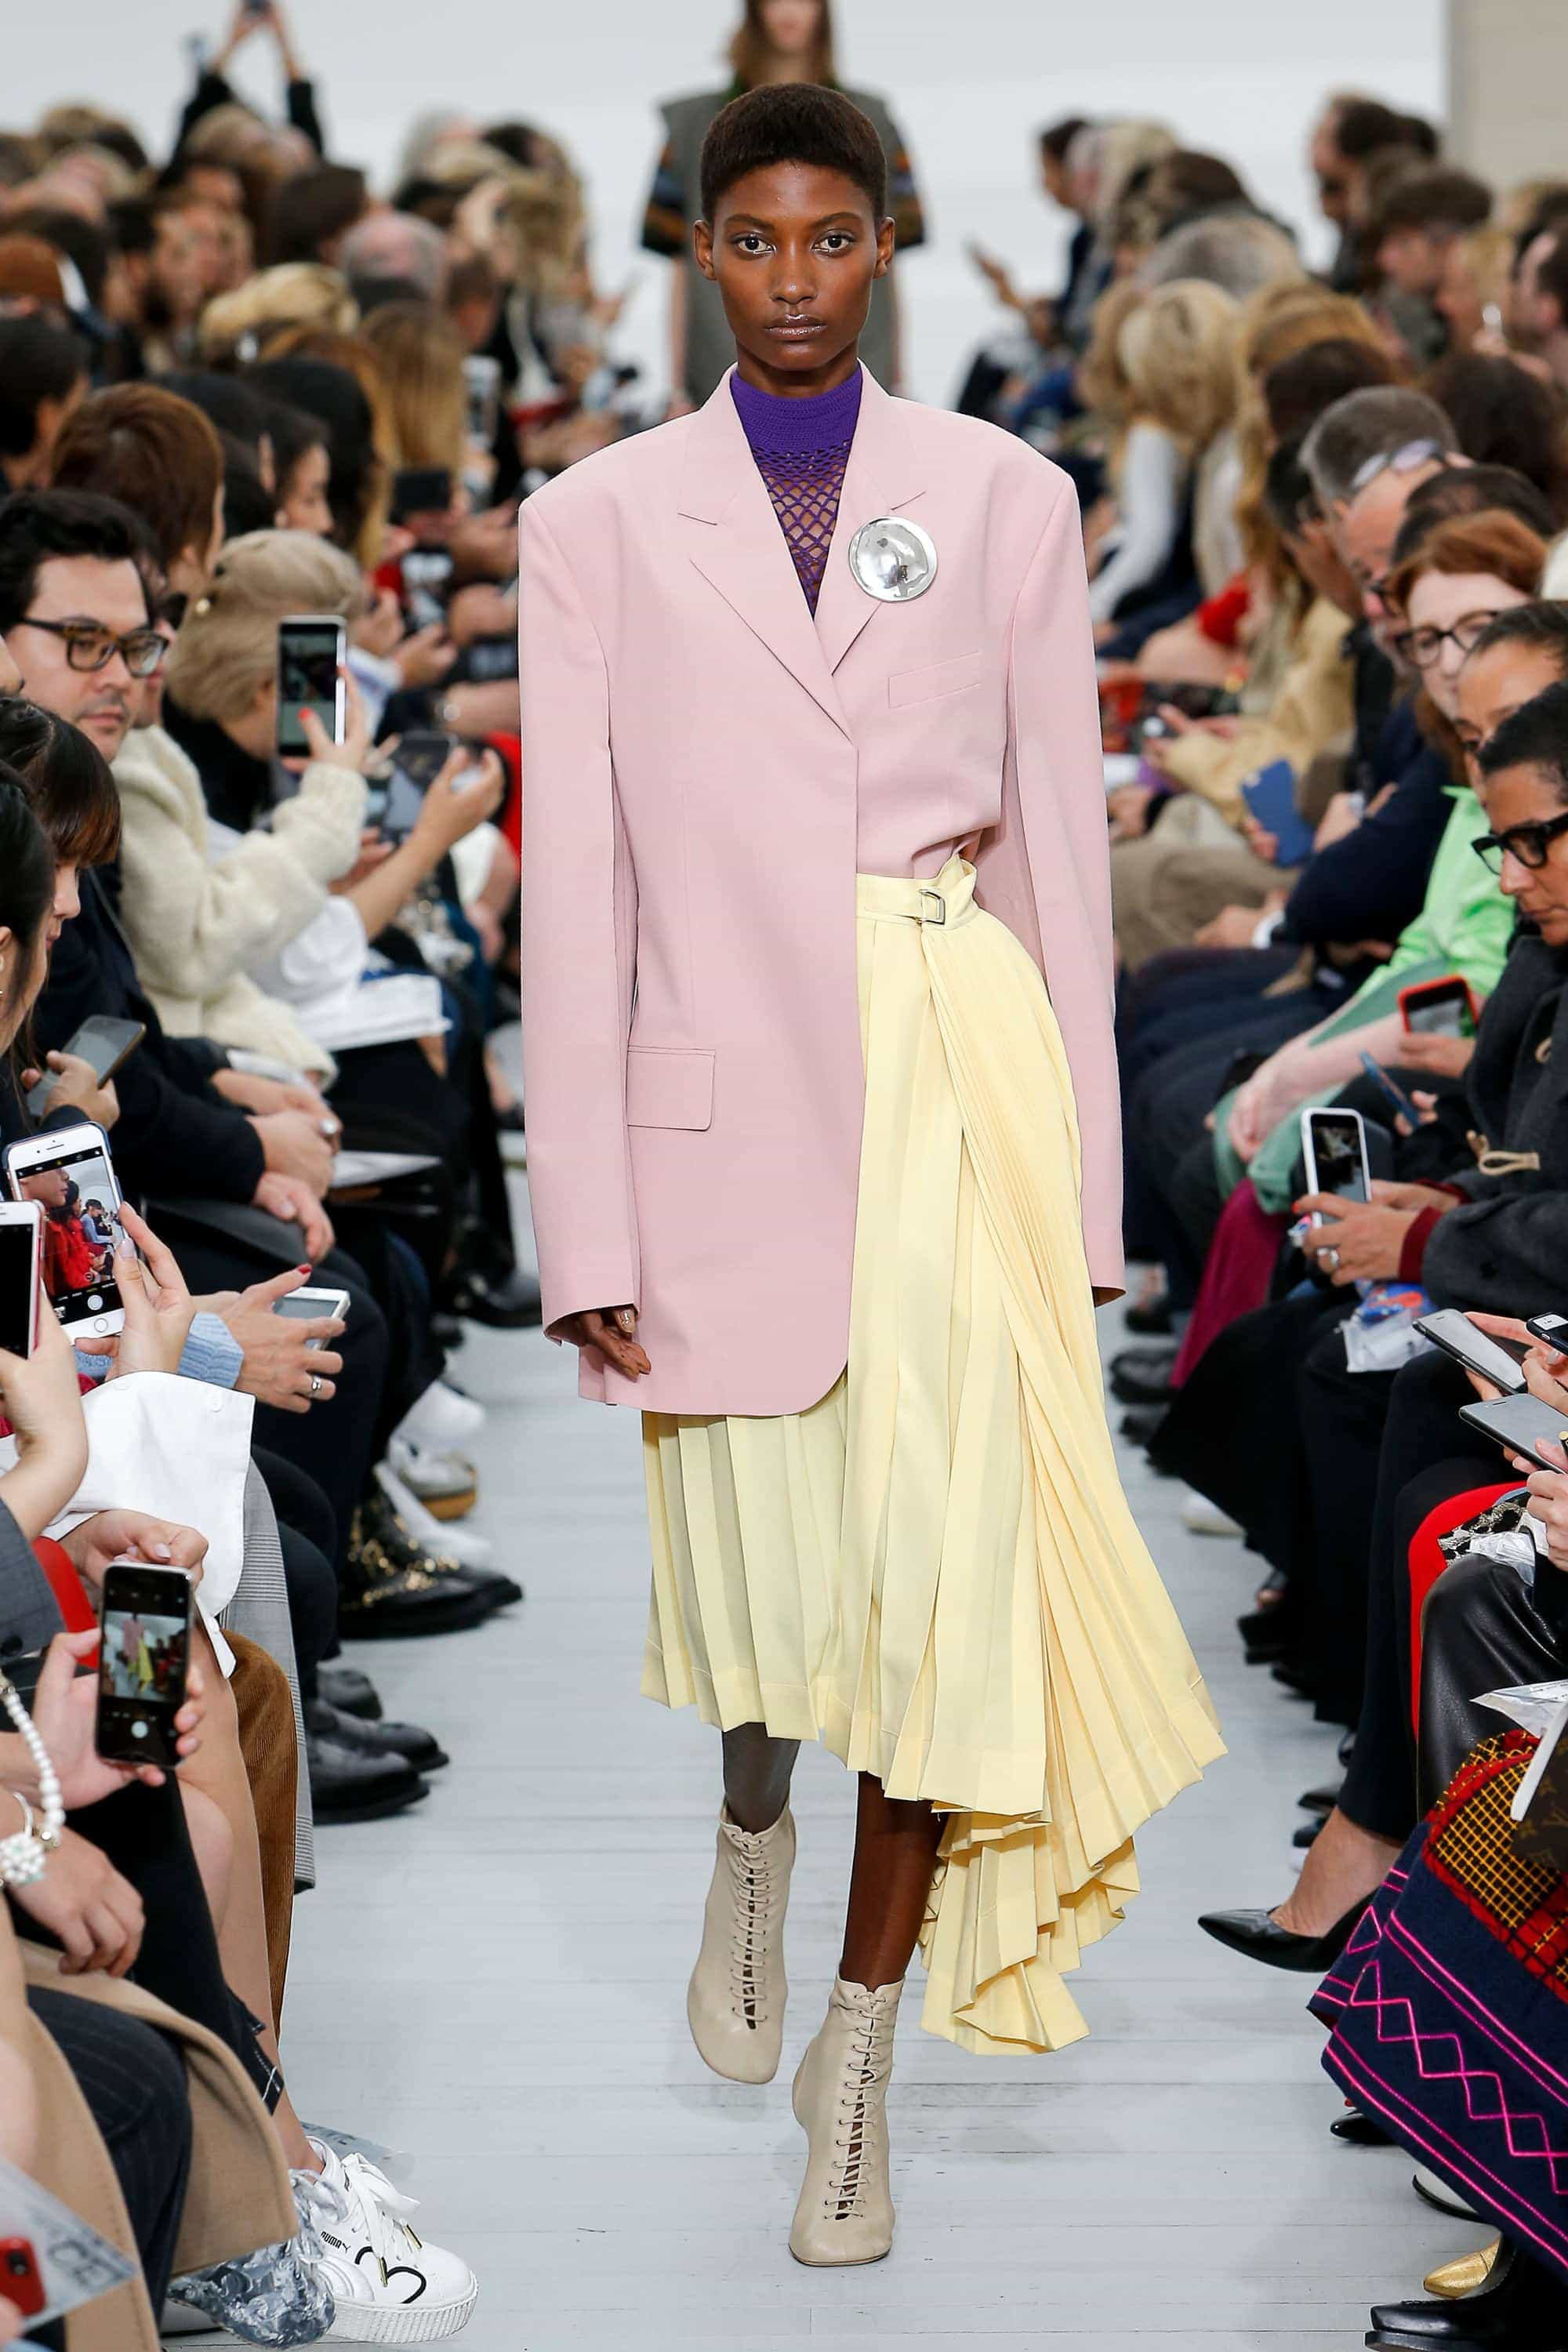 Trendy Tuesday, Céline, Phoebe Philo, Asymmetrical, Style, Fashion, Fashion Inspiration, Spring Fashion, SS18, Spring Summer 2018, Pastel Colors, Purple, Pink, Shop the Look